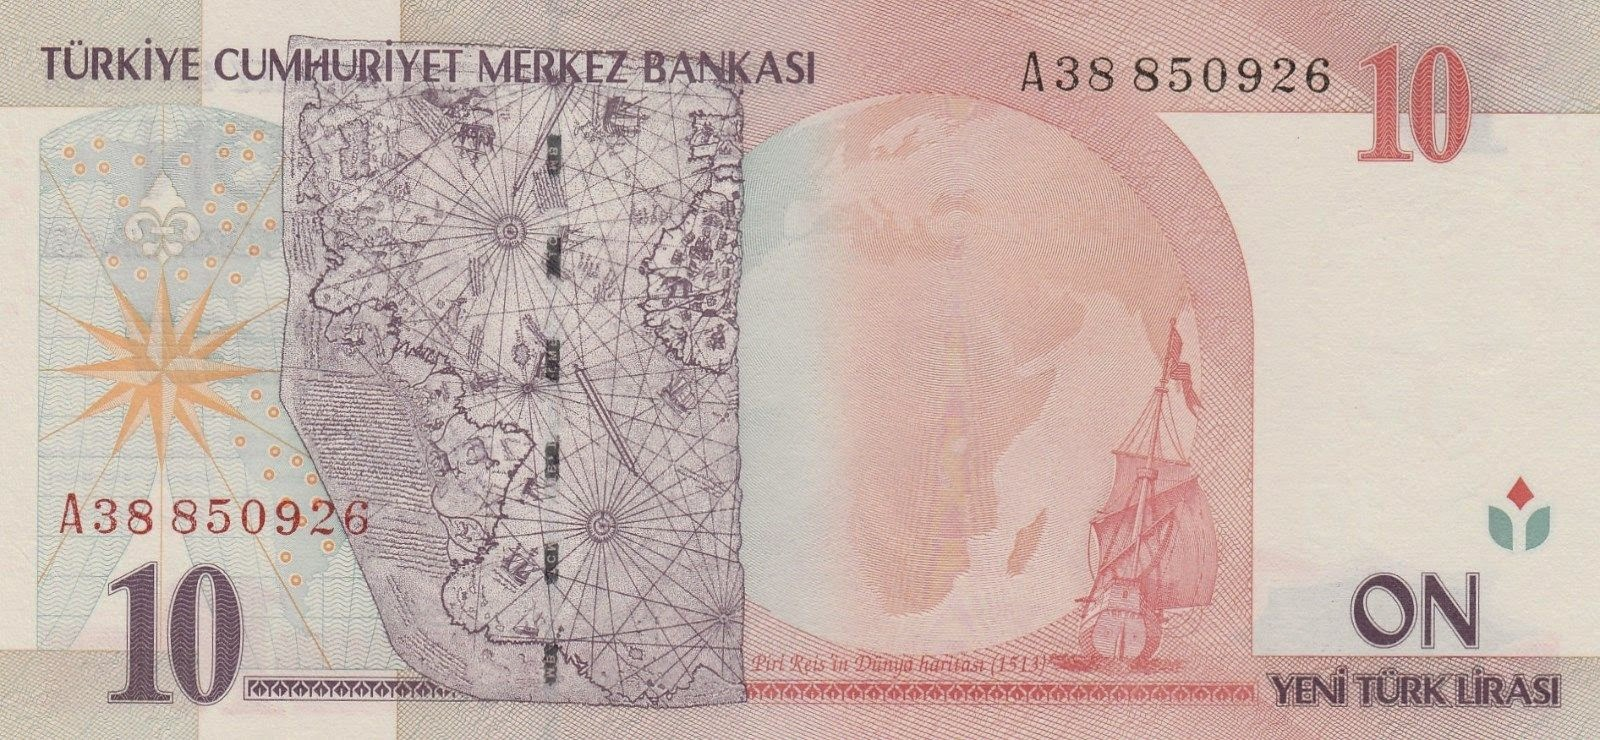 10 New Turkish Lira banknote 2005|World Banknotes & Coins Pictures ...